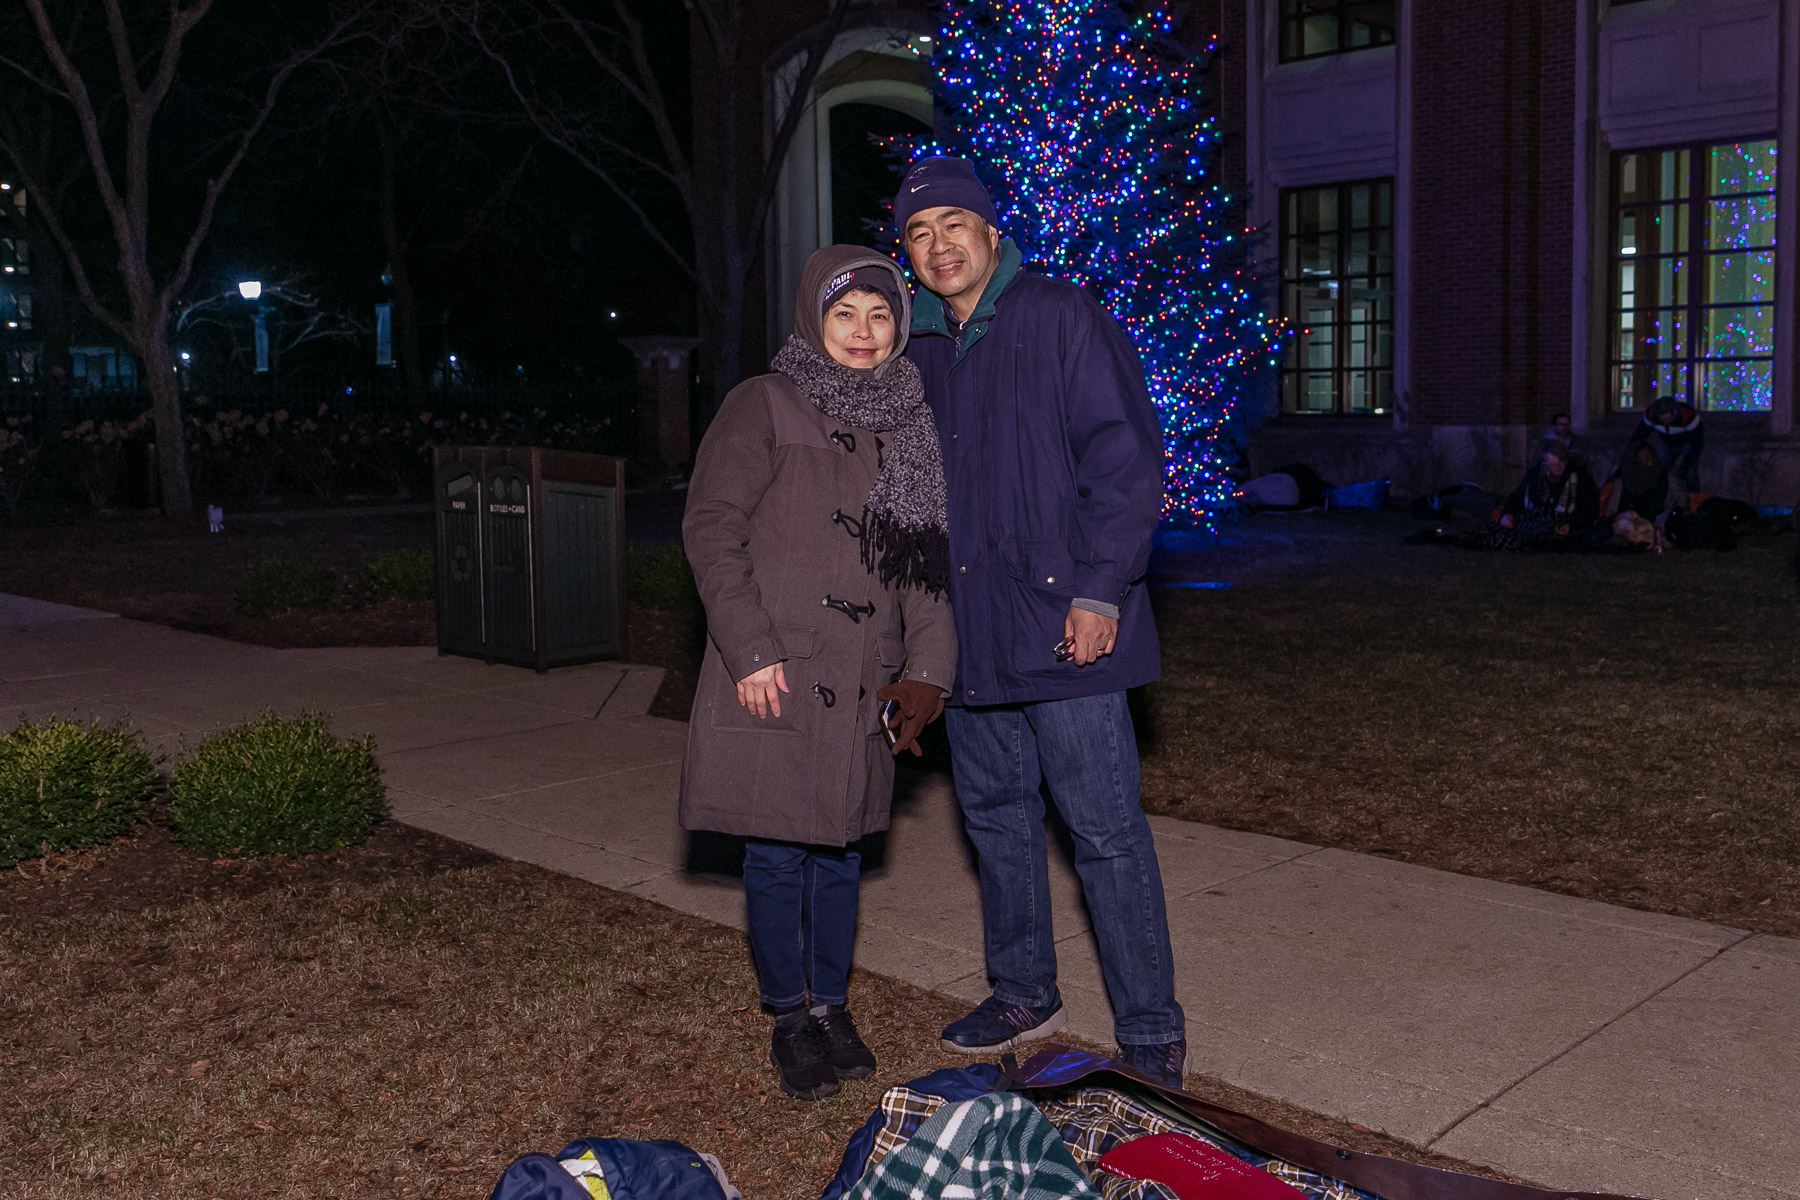 Dr. and Mrs. Esteban pose for a photo before hunkering down in St. Vincent's Circle for the night. (DePaul University/Randall Spriggs)